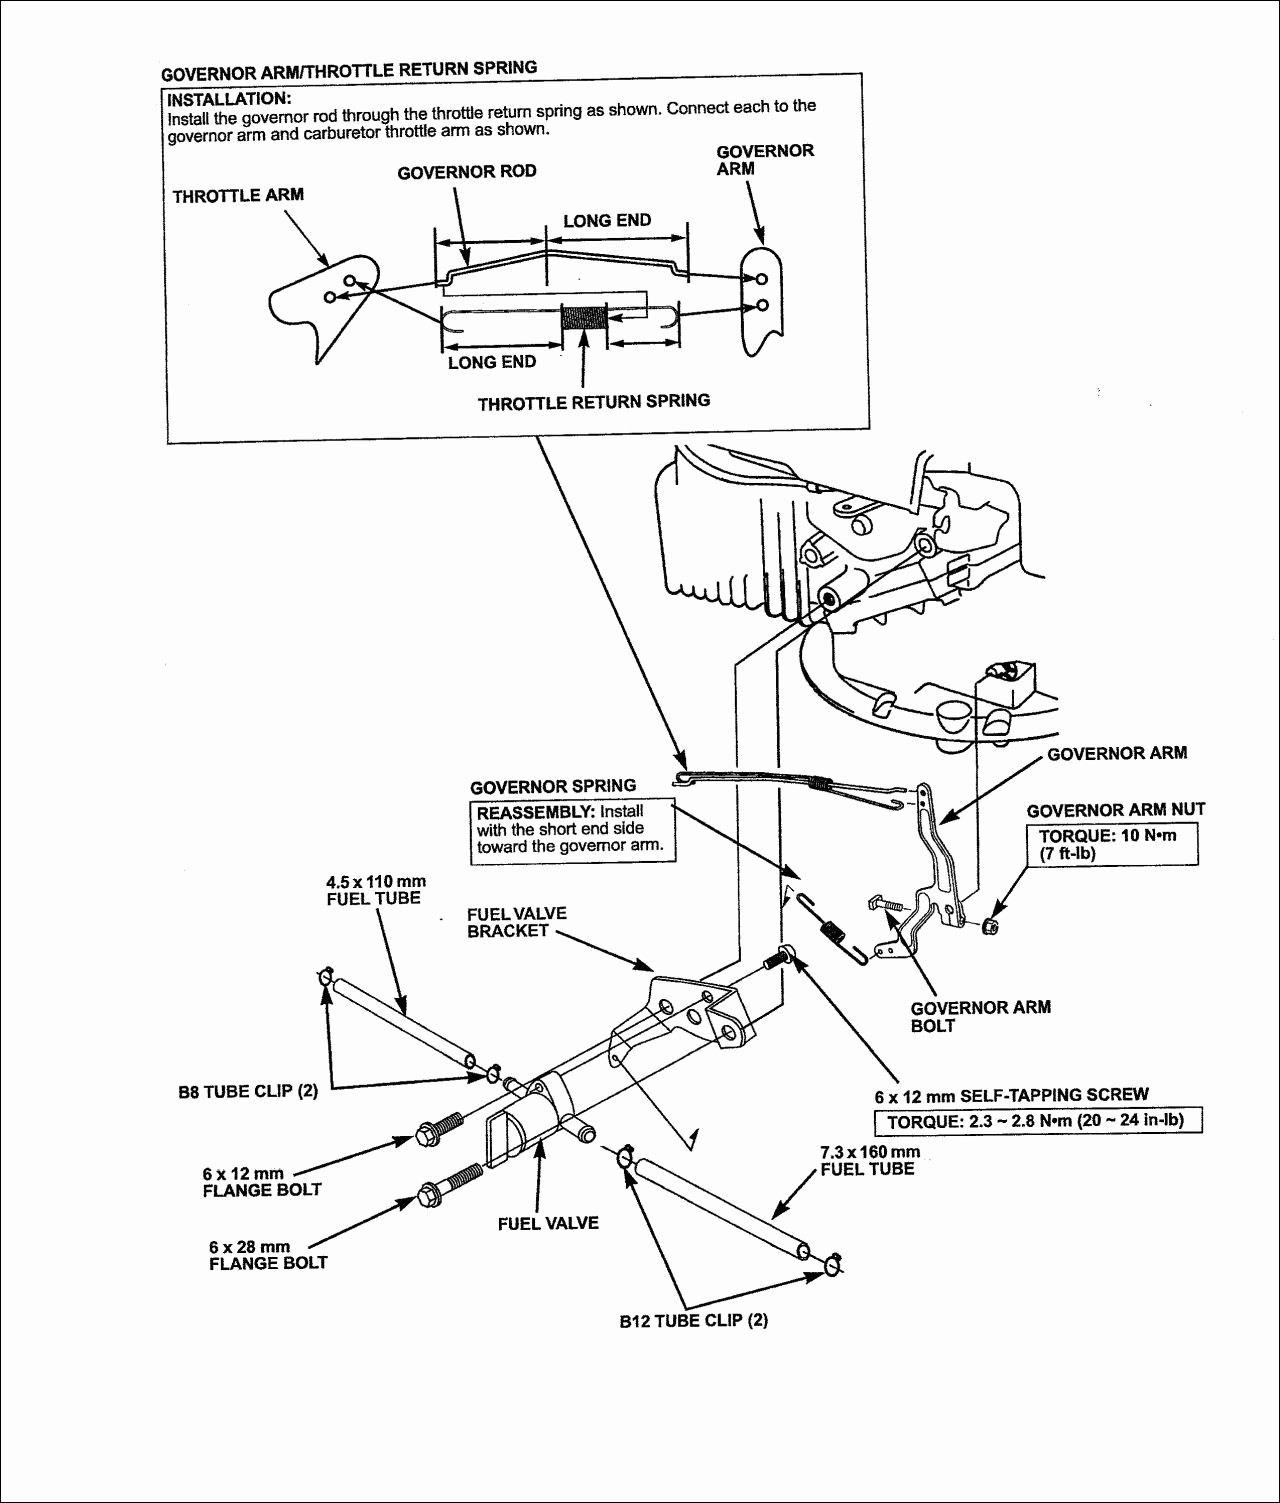 Honda Small Engine Carburetor Diagram 2008 Honda Civic Engine Diagram Oil Honda Wiring Diagrams Instructions Of Honda Small Engine Carburetor Diagram Honda Gcv160 Carburetor Diagram – 917 Craftsman 17 Hp 42 Inch Mower